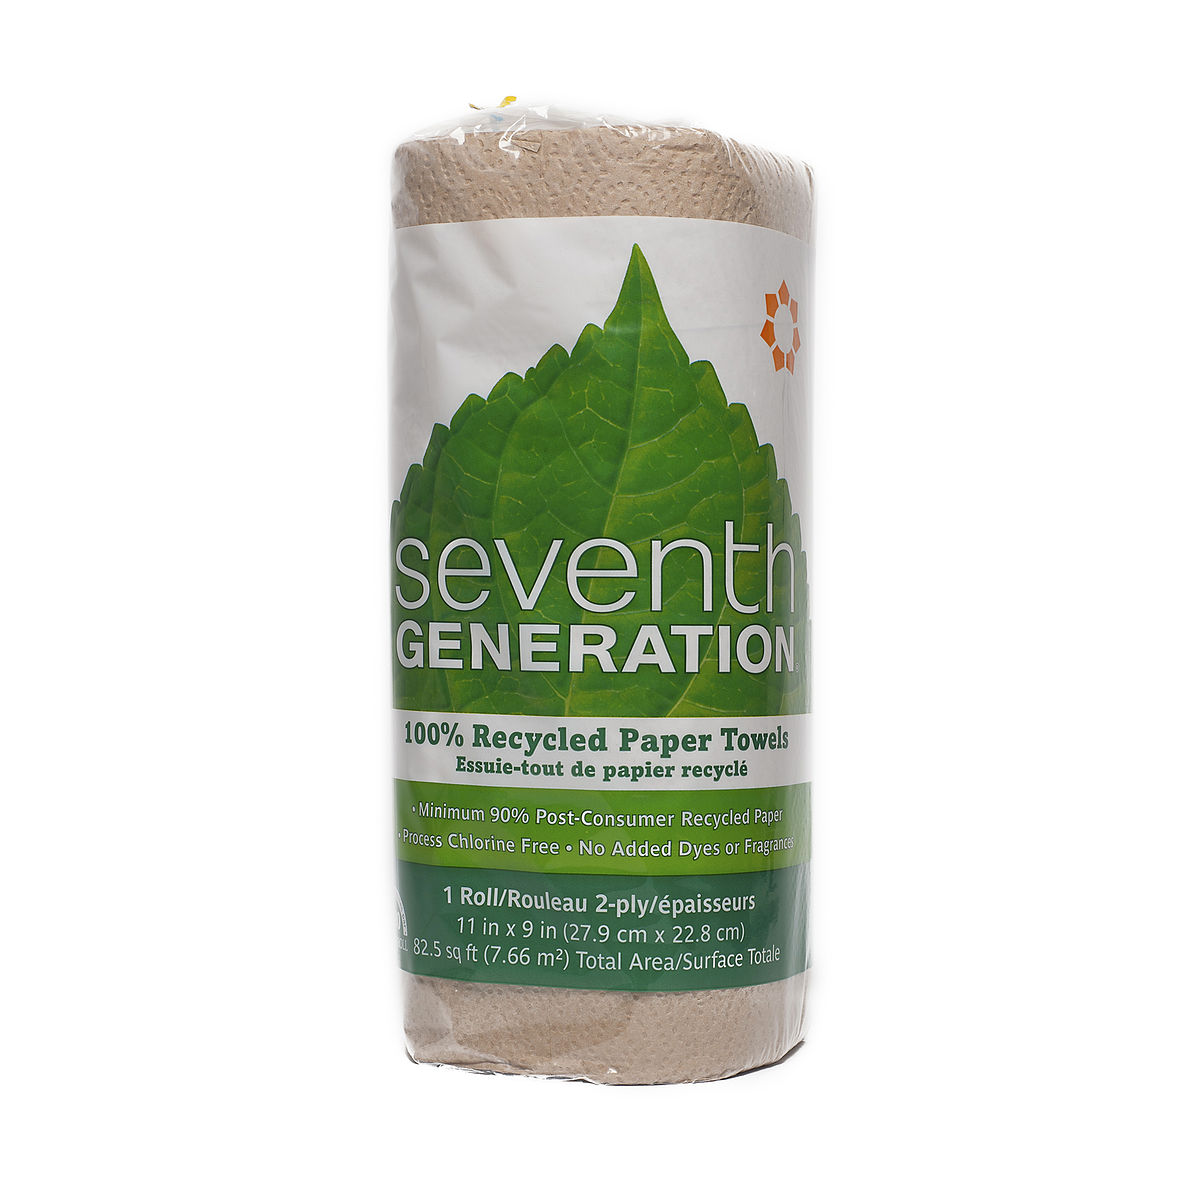 seventh generation paper towels review